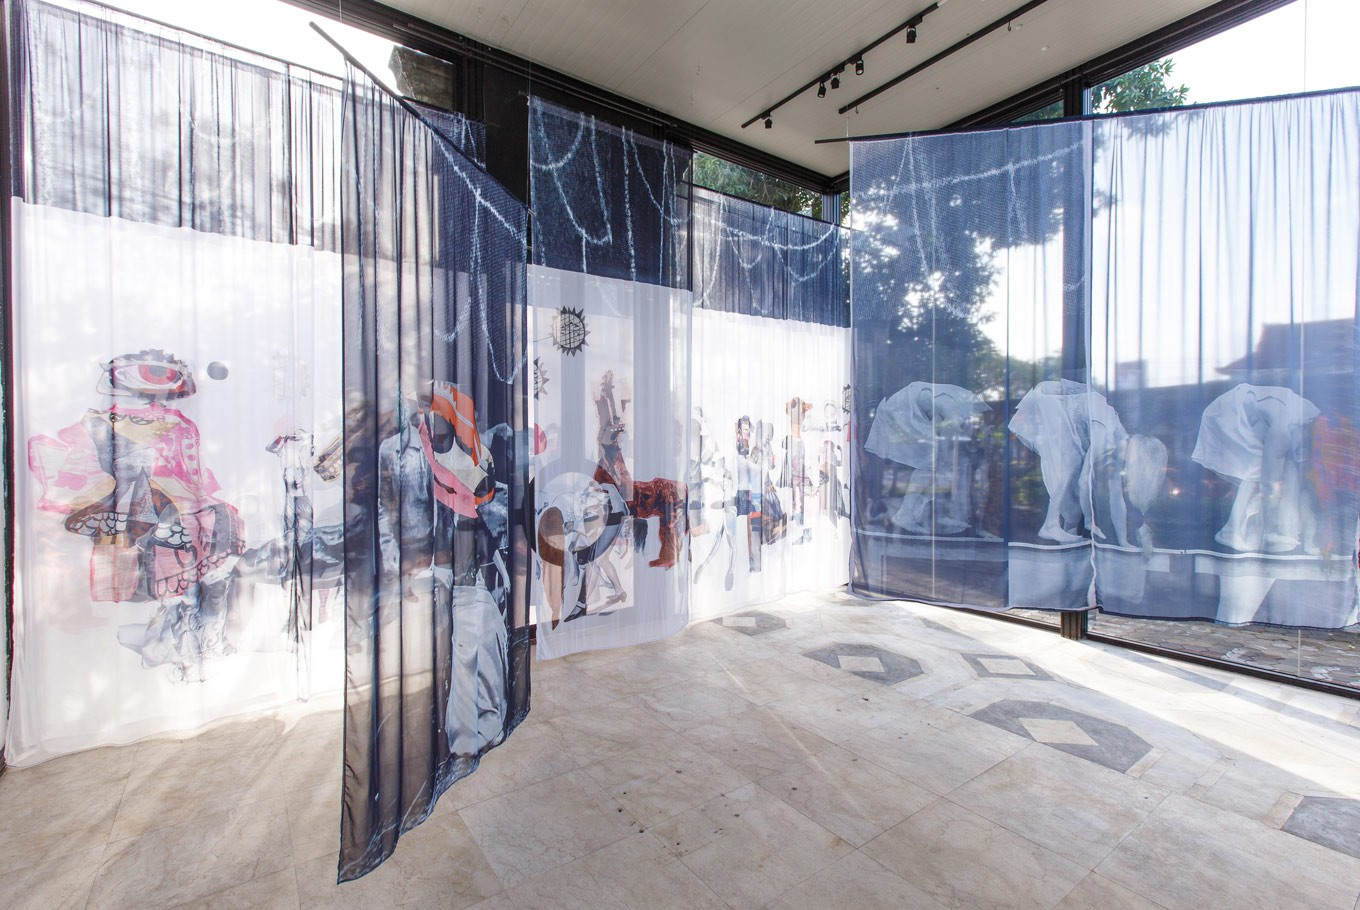 Sally Smart's 'P.A.R.A.D.E.' exhibition is running concurrently at BIASA in Kerobokan.